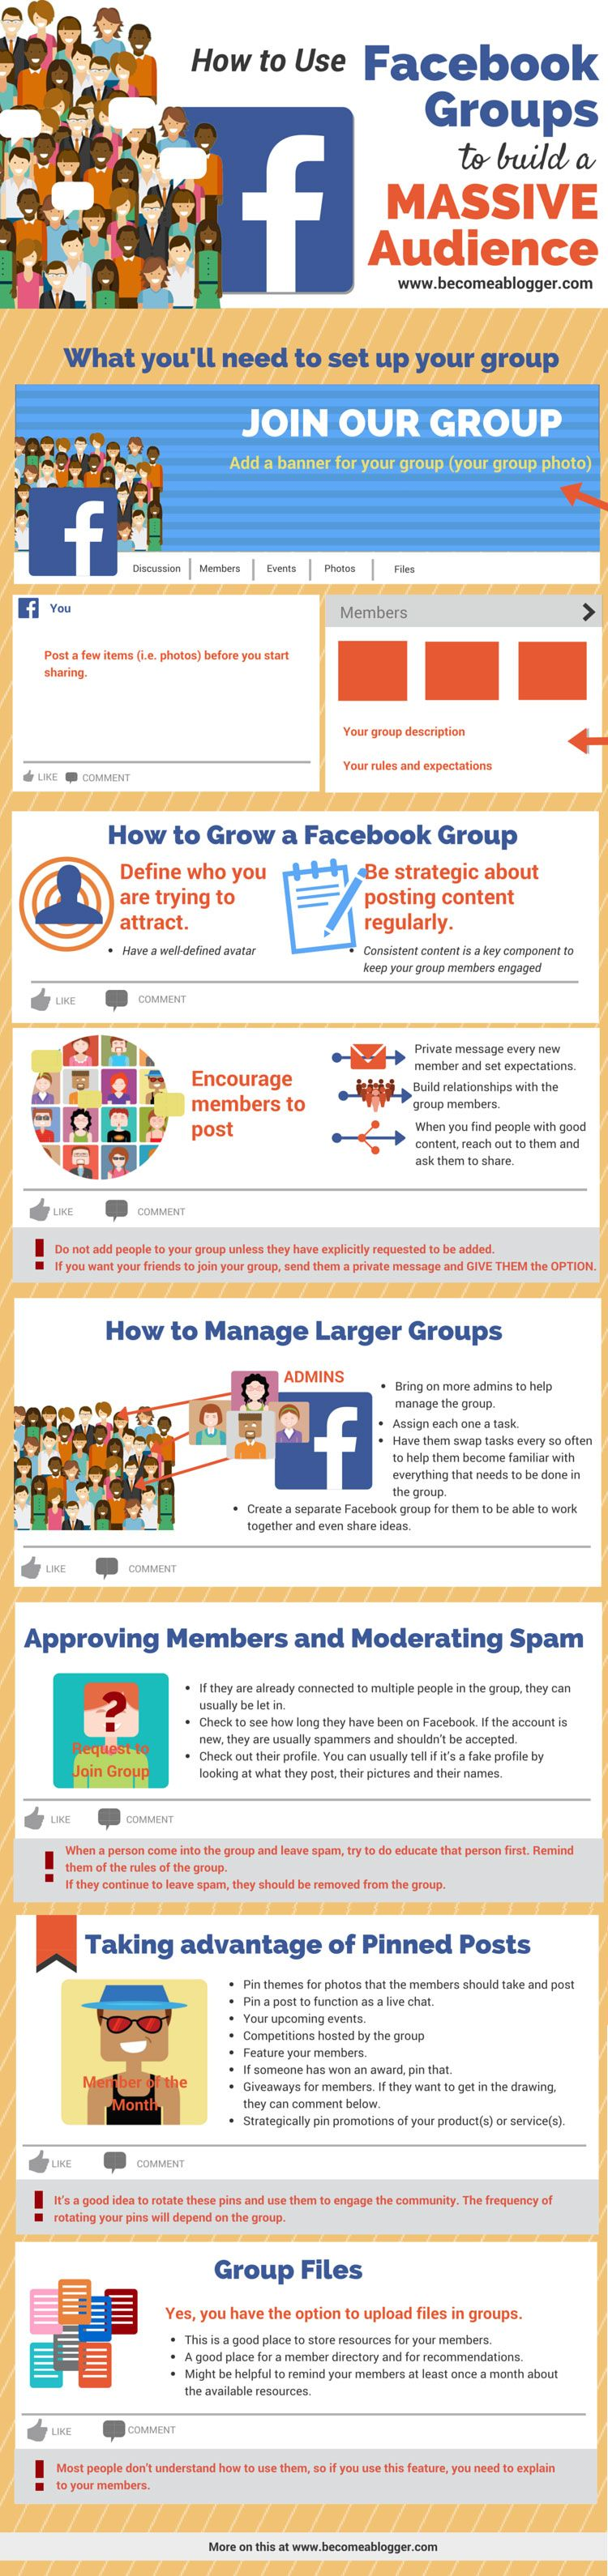 How to Use Facebook Groups to Build a Massive Audience